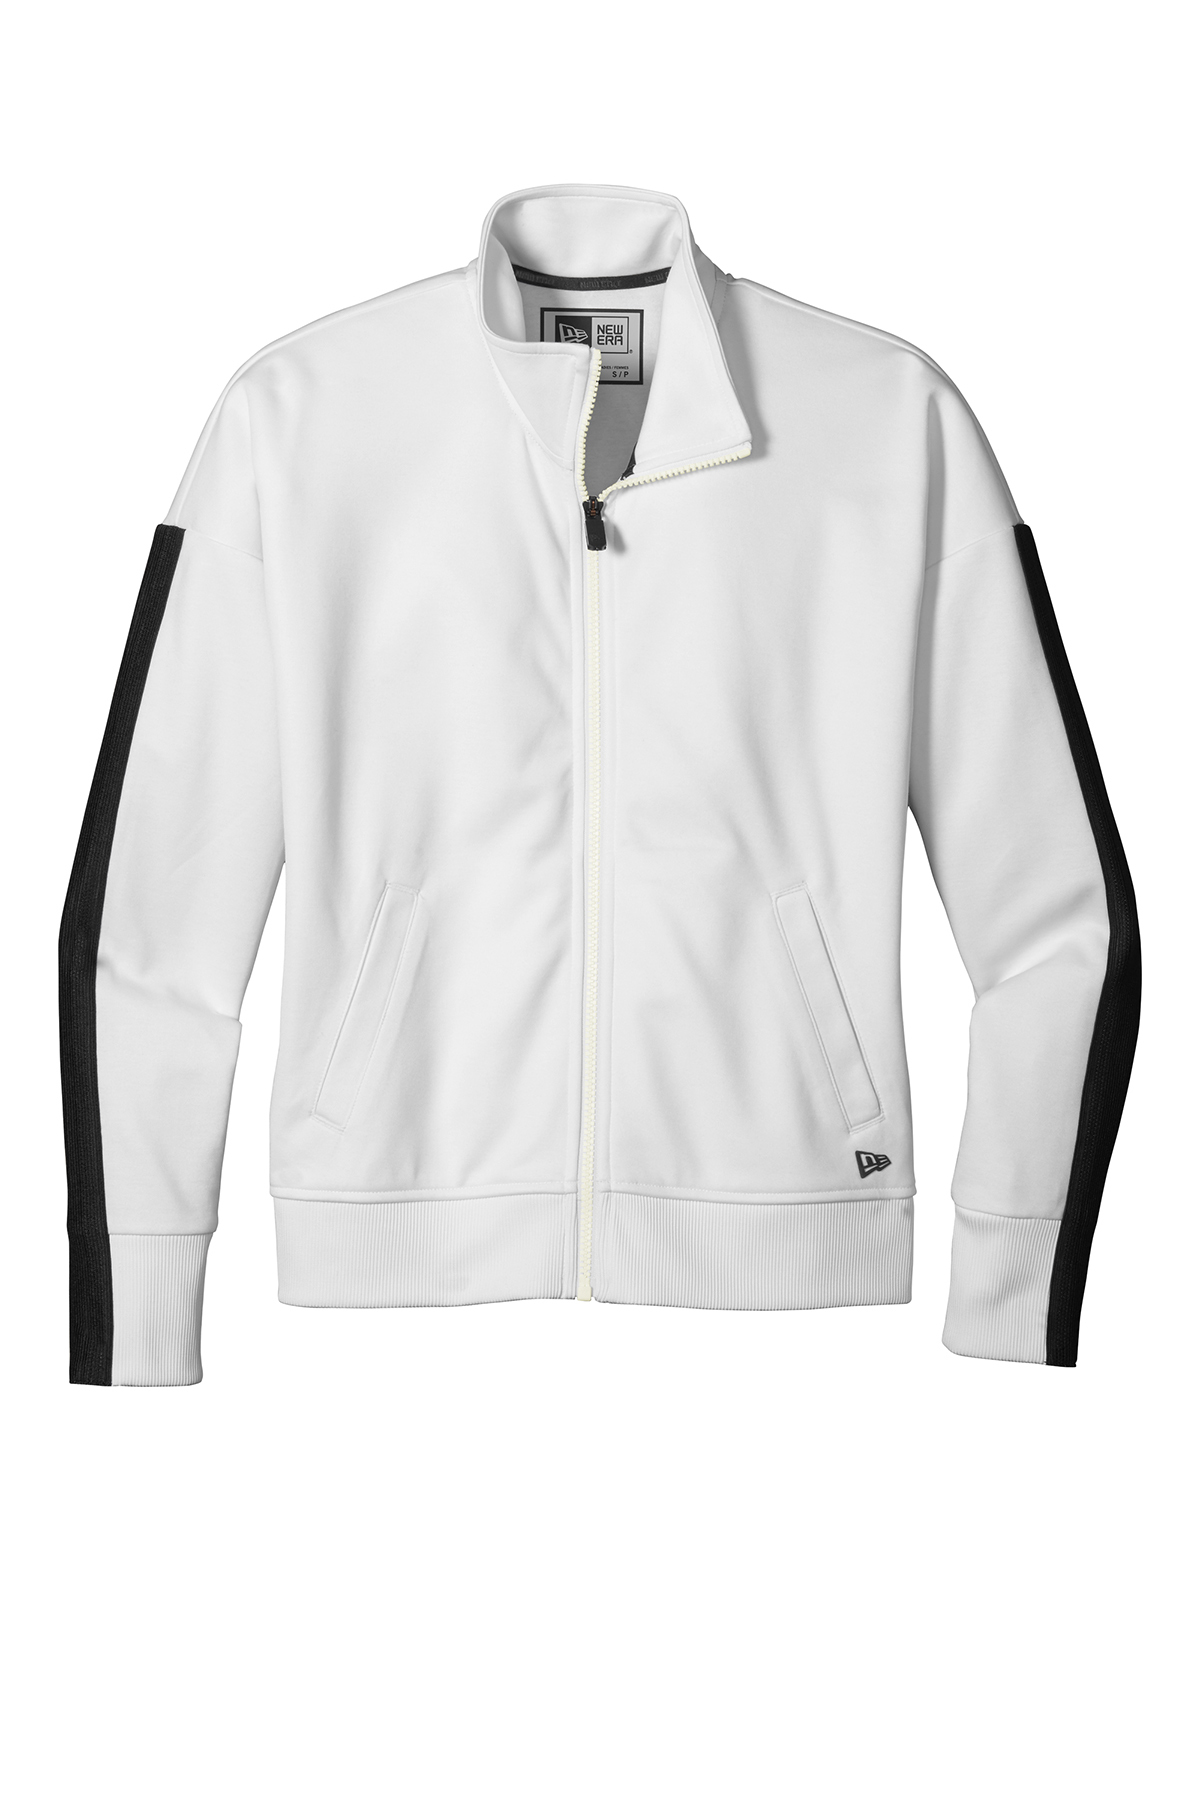 New Era ® LNEA650 - Ladies Track Jacket